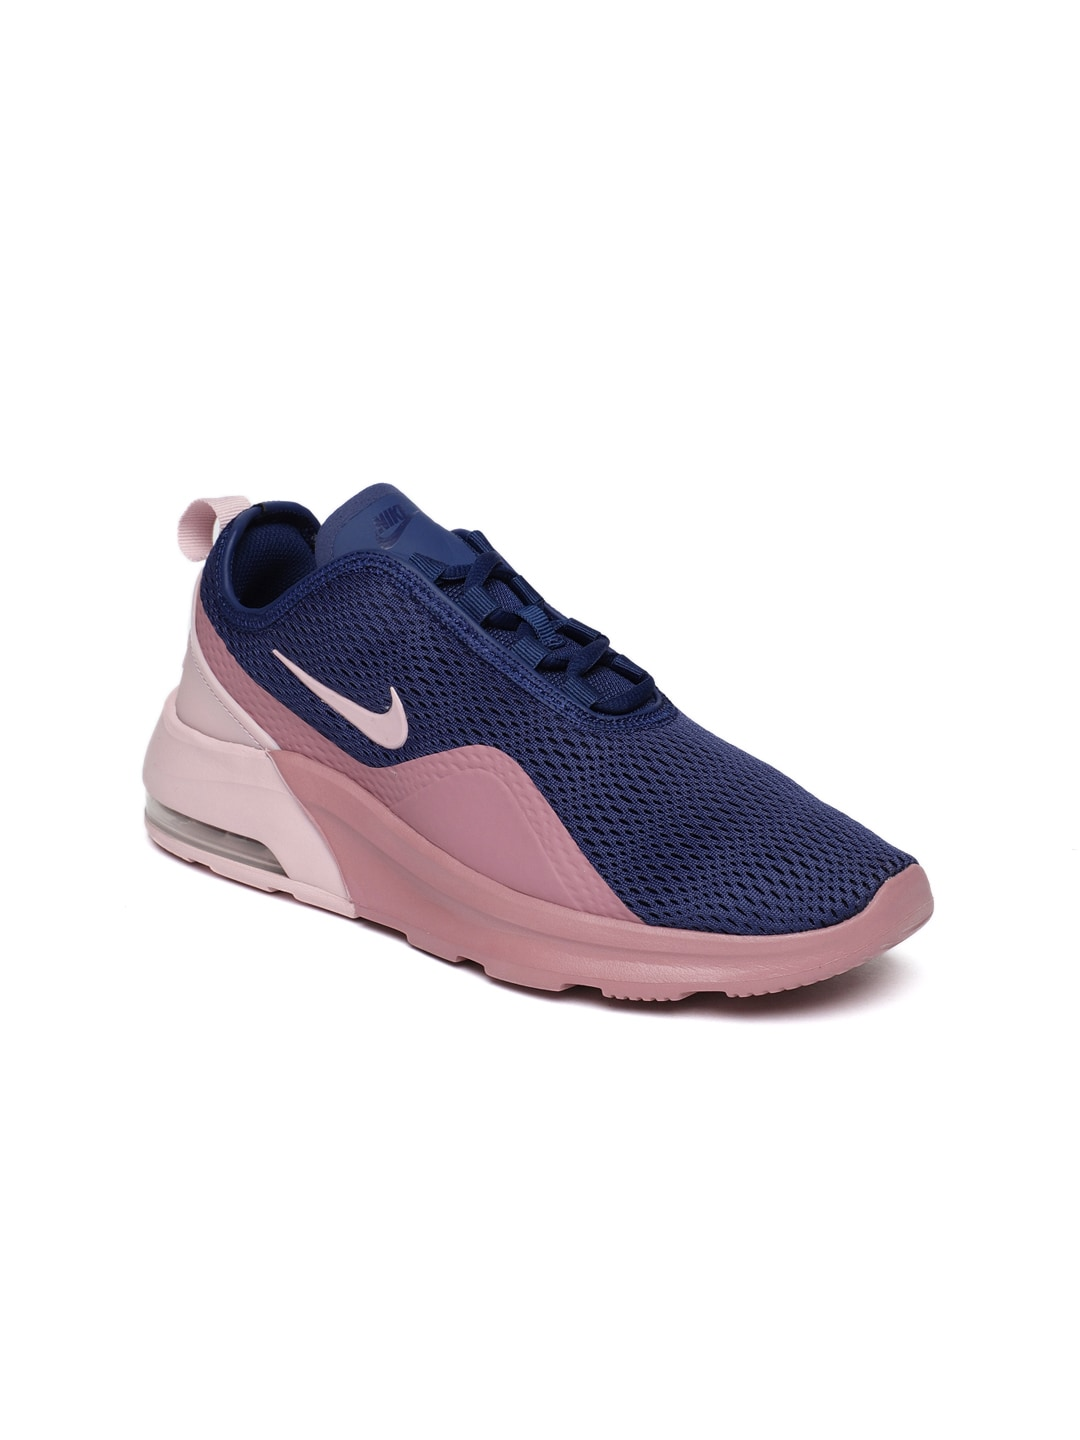 best website 6043f 4724e Buy Nike Women Rose Gold Toned Air Max Thea Sneakers - Casual Shoes ...